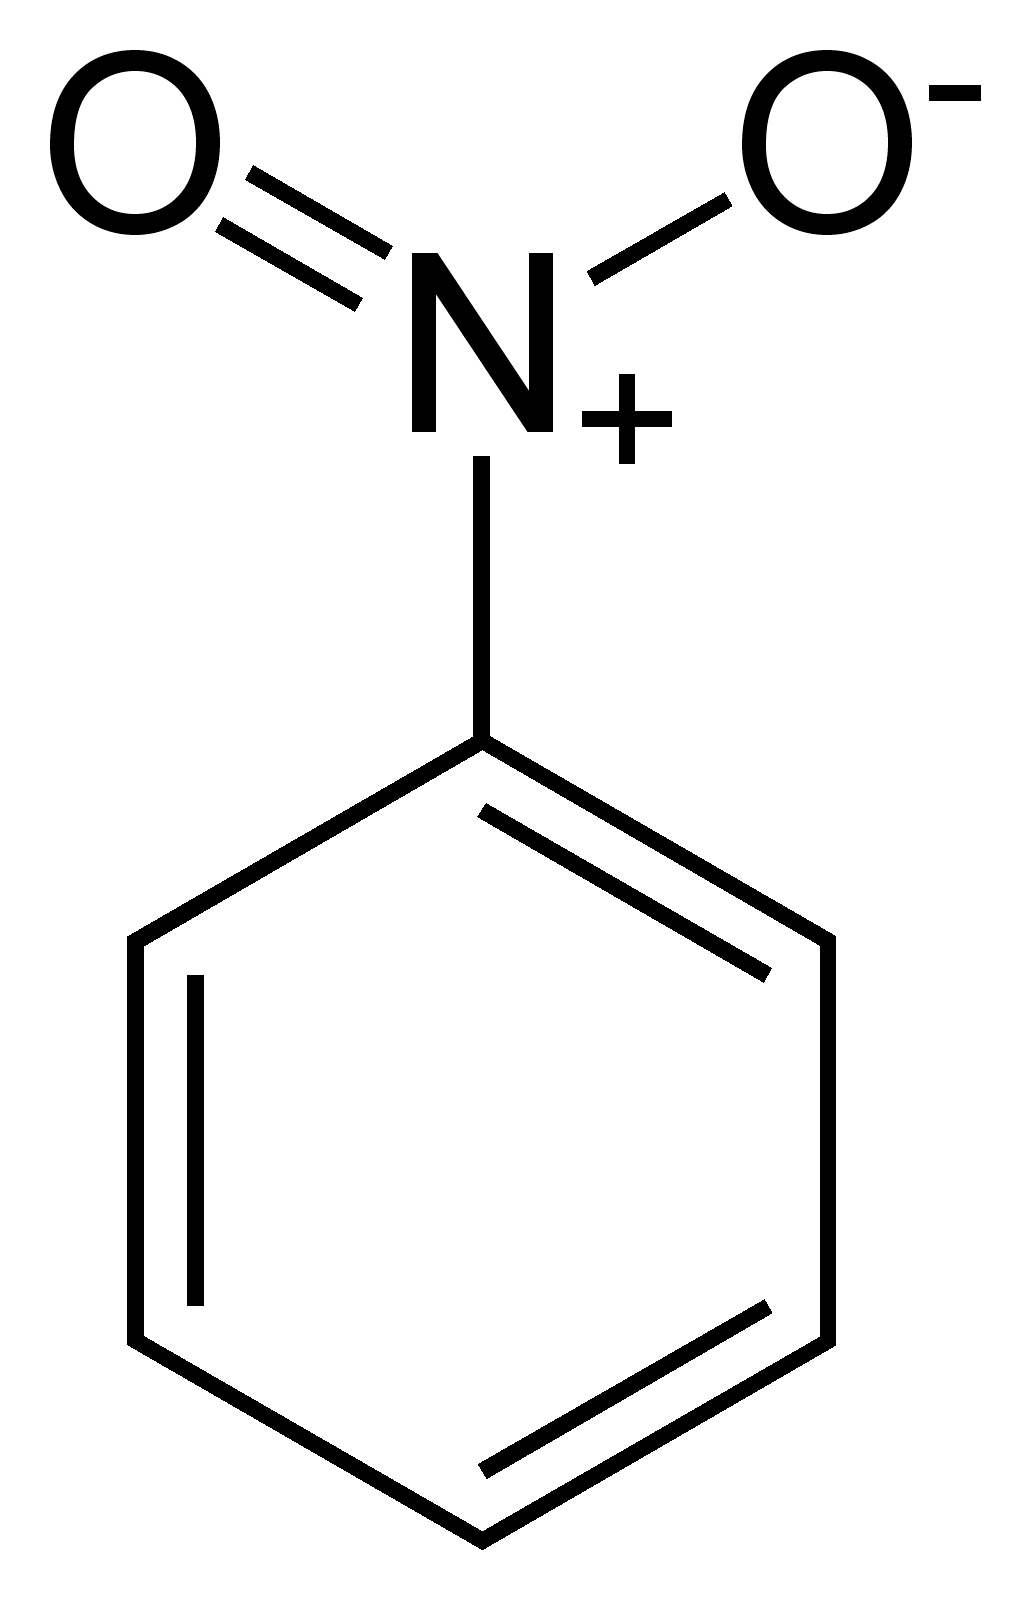 Solved: Draw A Resonance Structure, Complete With All Form